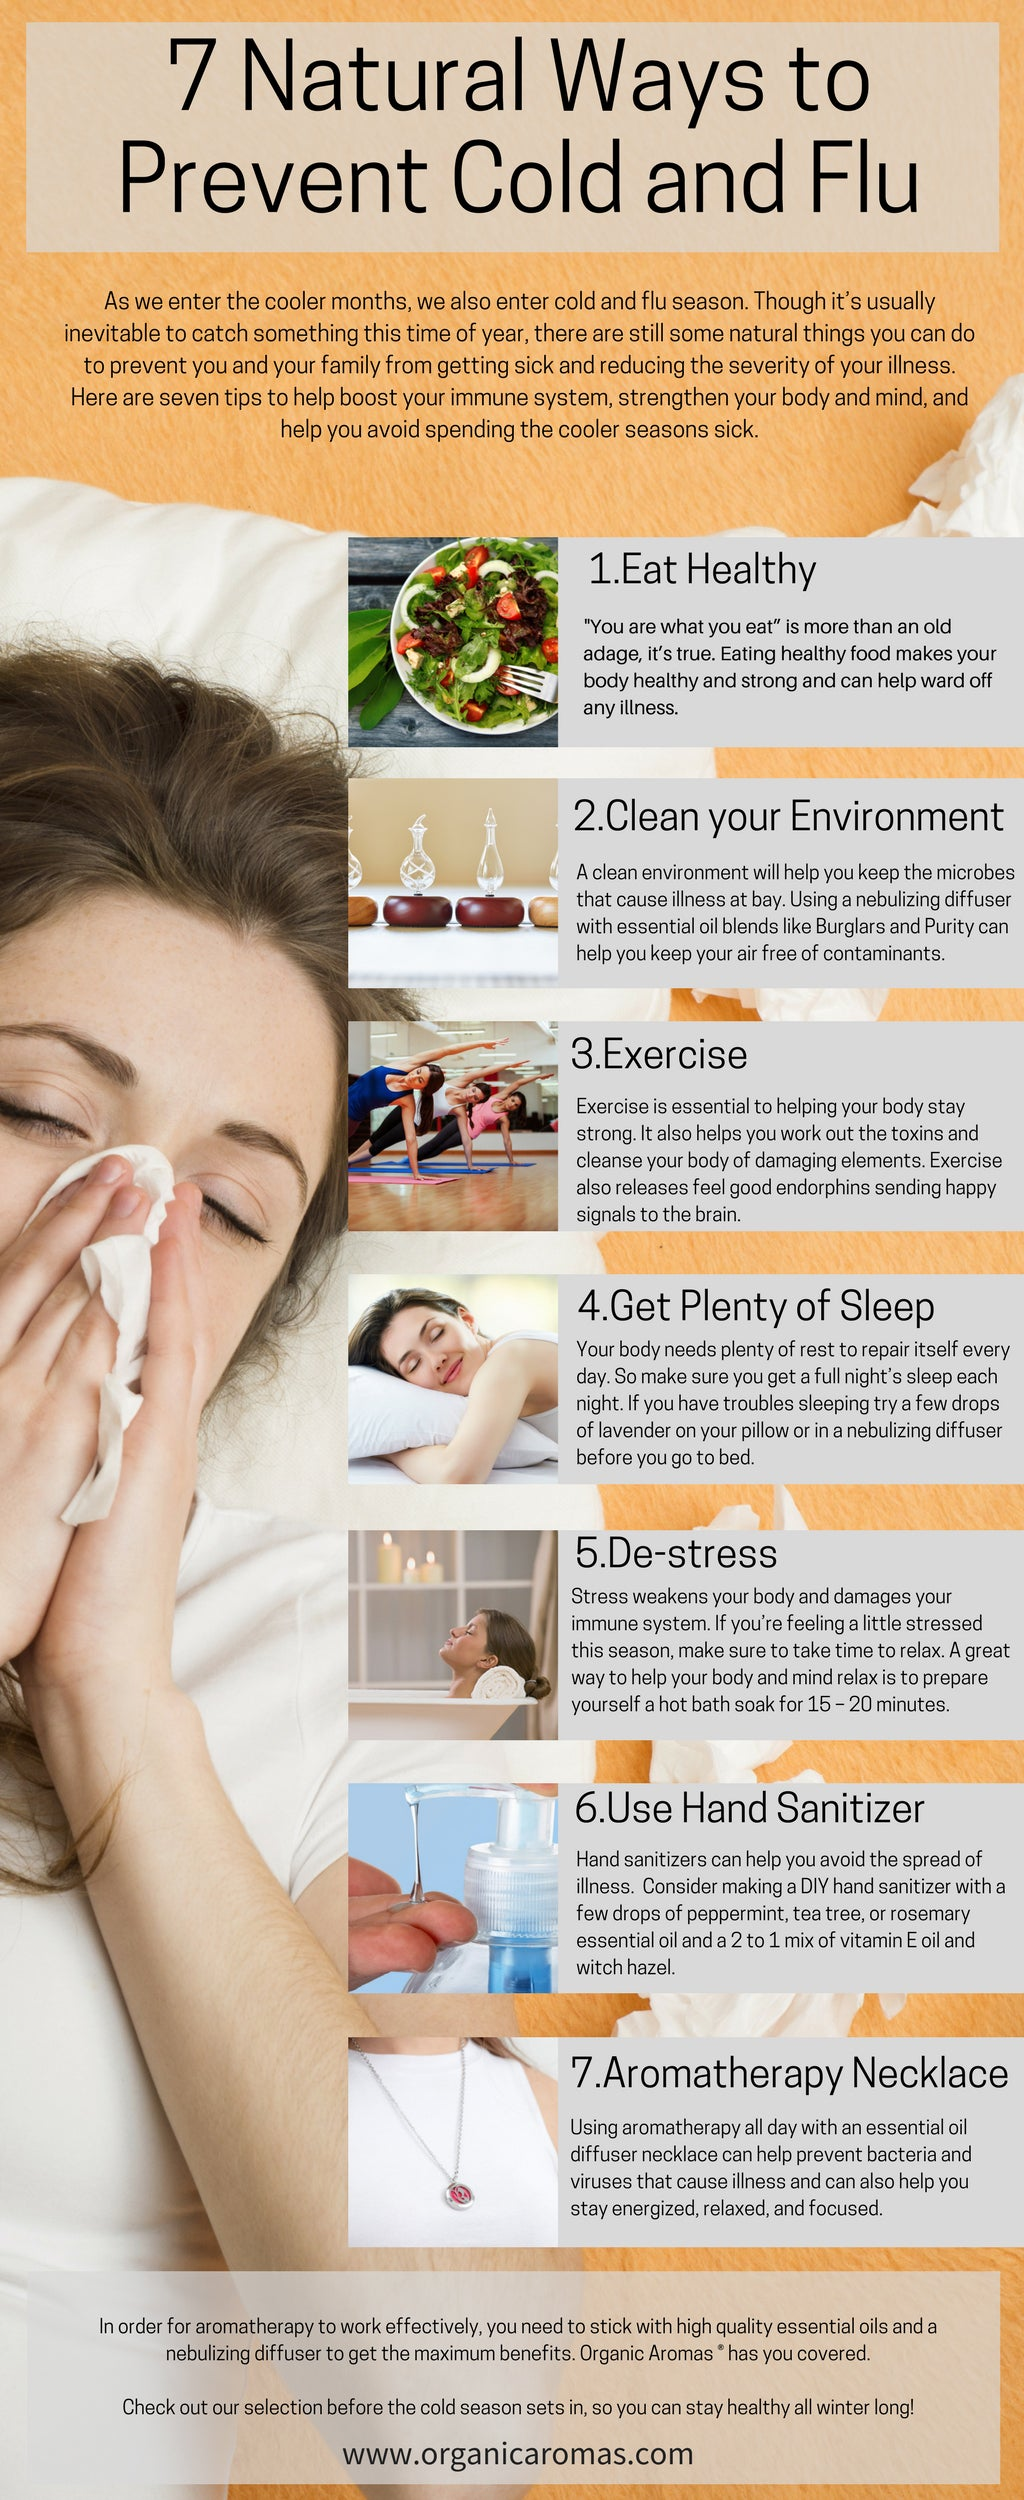 7 natural ways to prevent cold and flu - organic aromas